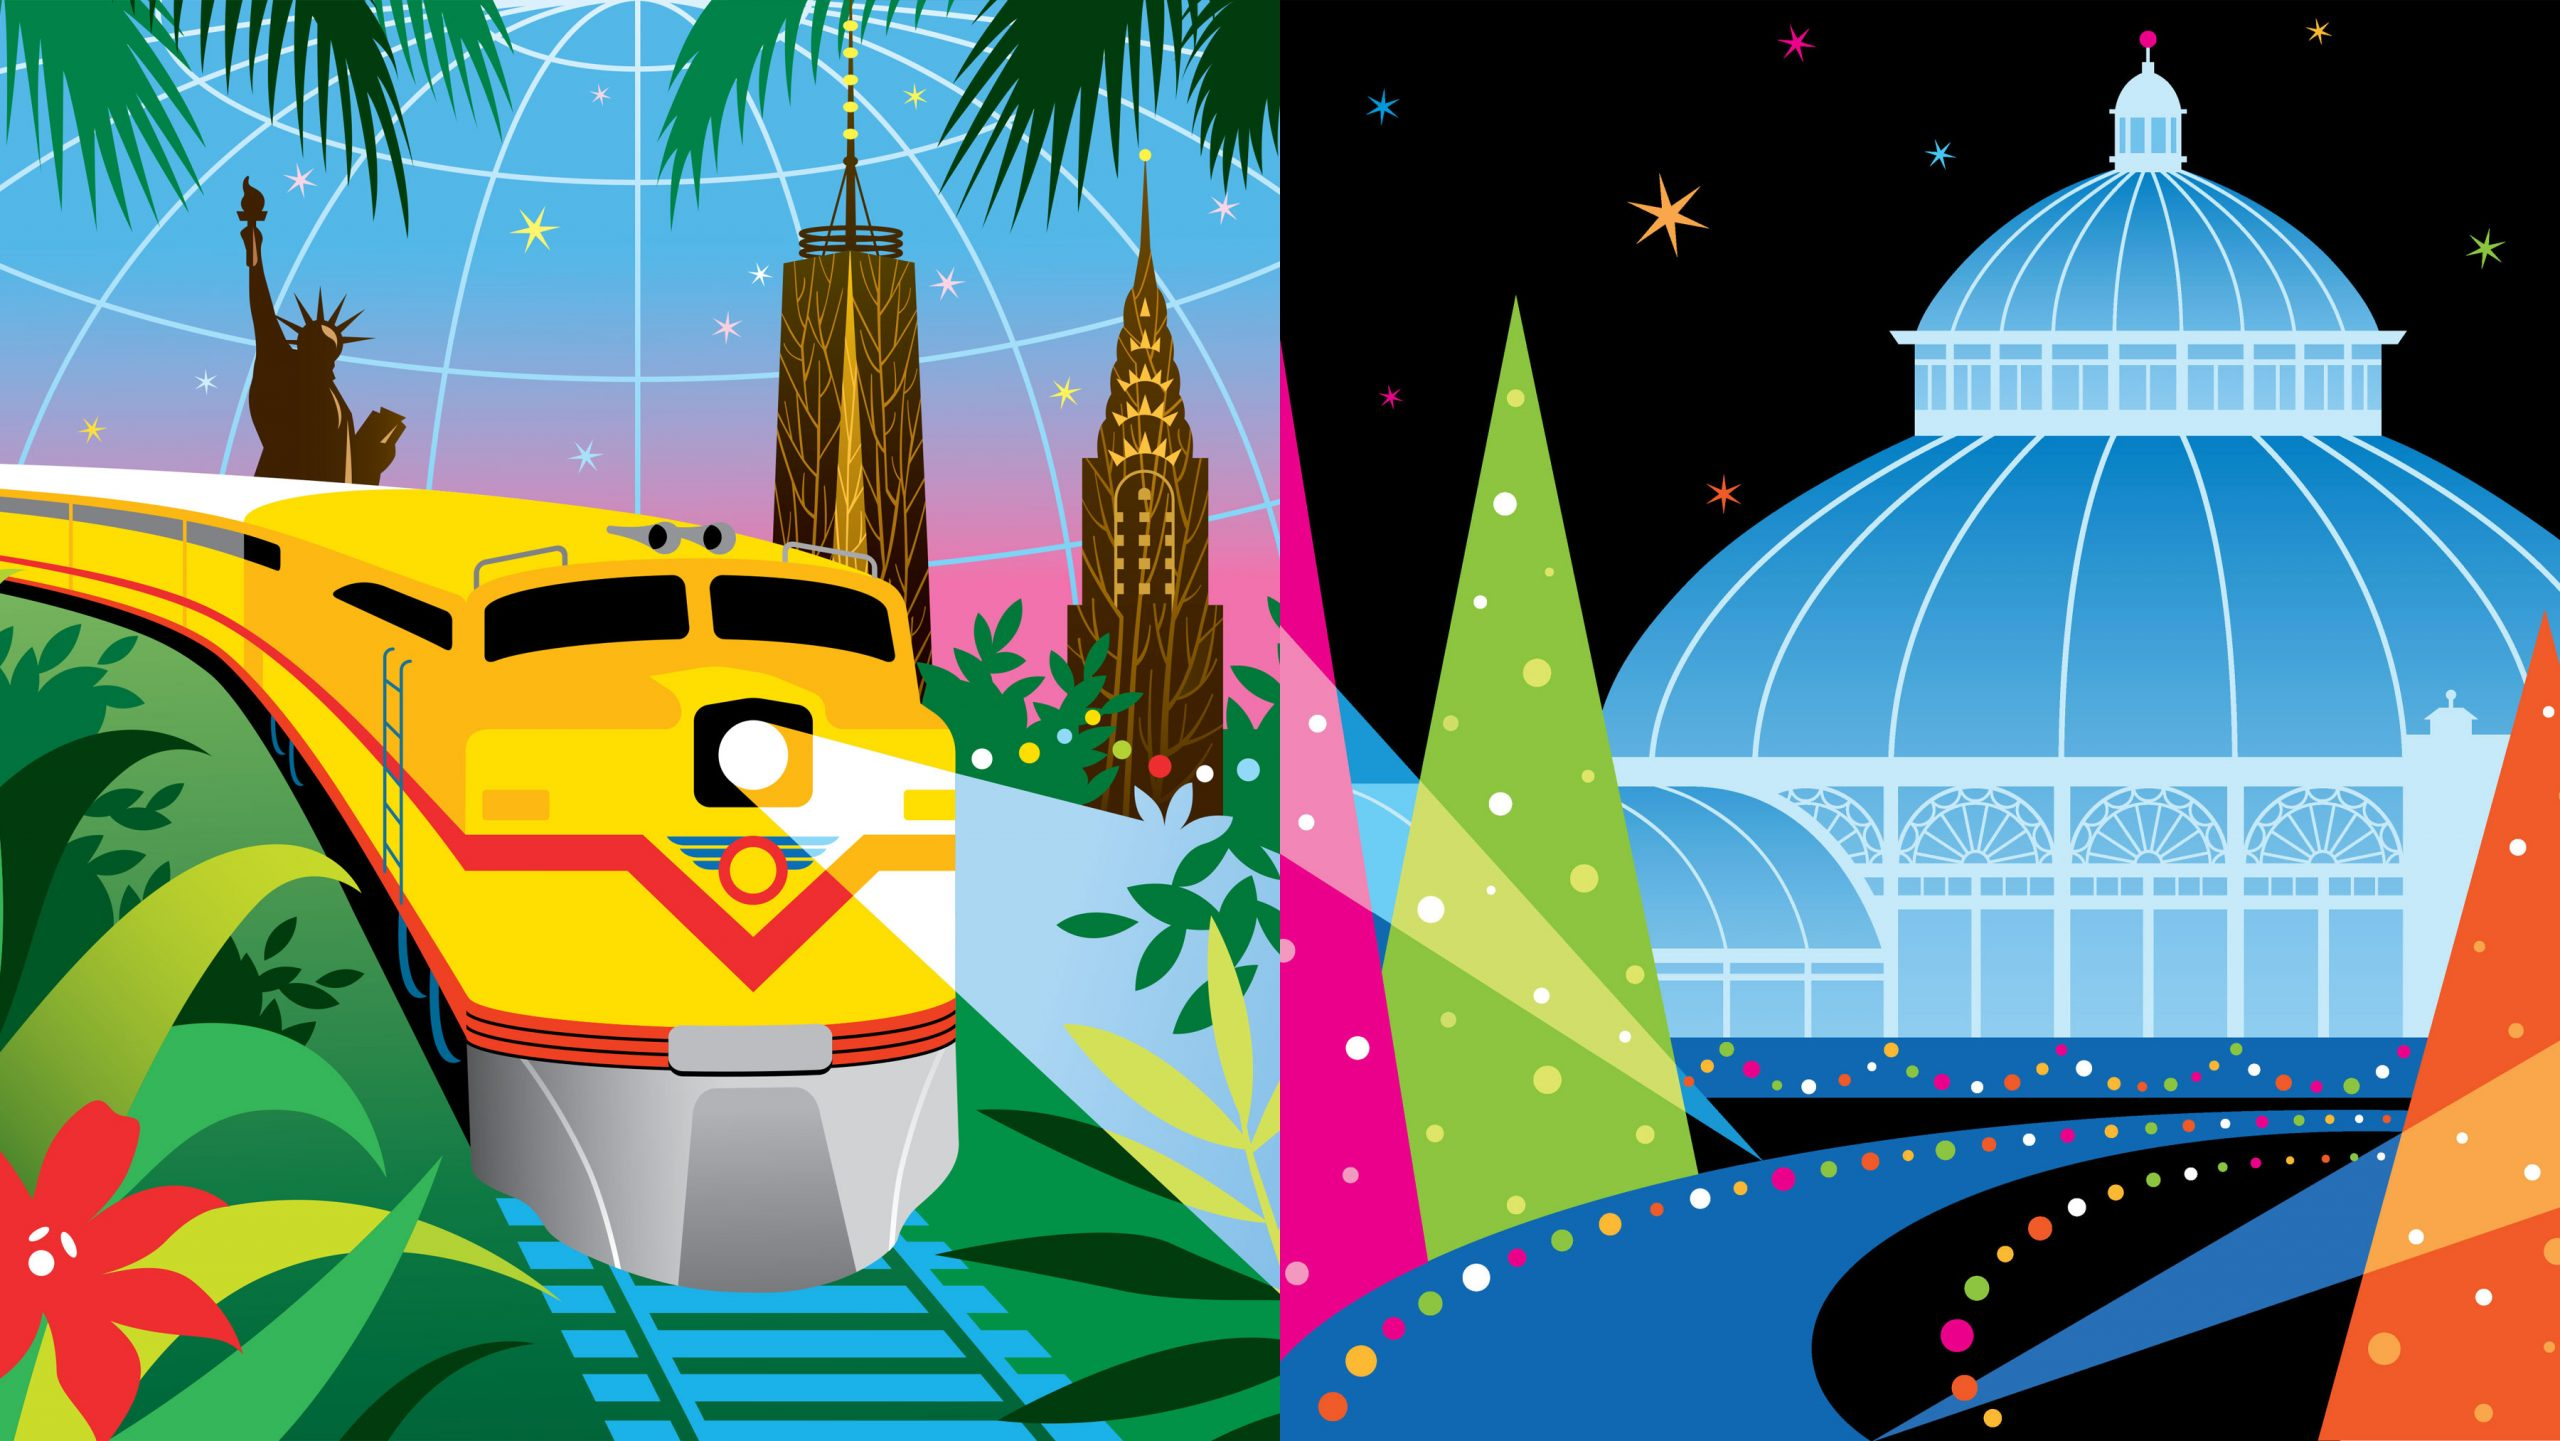 Graphic illustration of Holiday Train Show and Glow advertising - with a stylized yellow and red train in a glasshouse and green leaves, with brown buildings, next to a blue conservatory with black background and electric pink, green, and orange trangle shape trees.